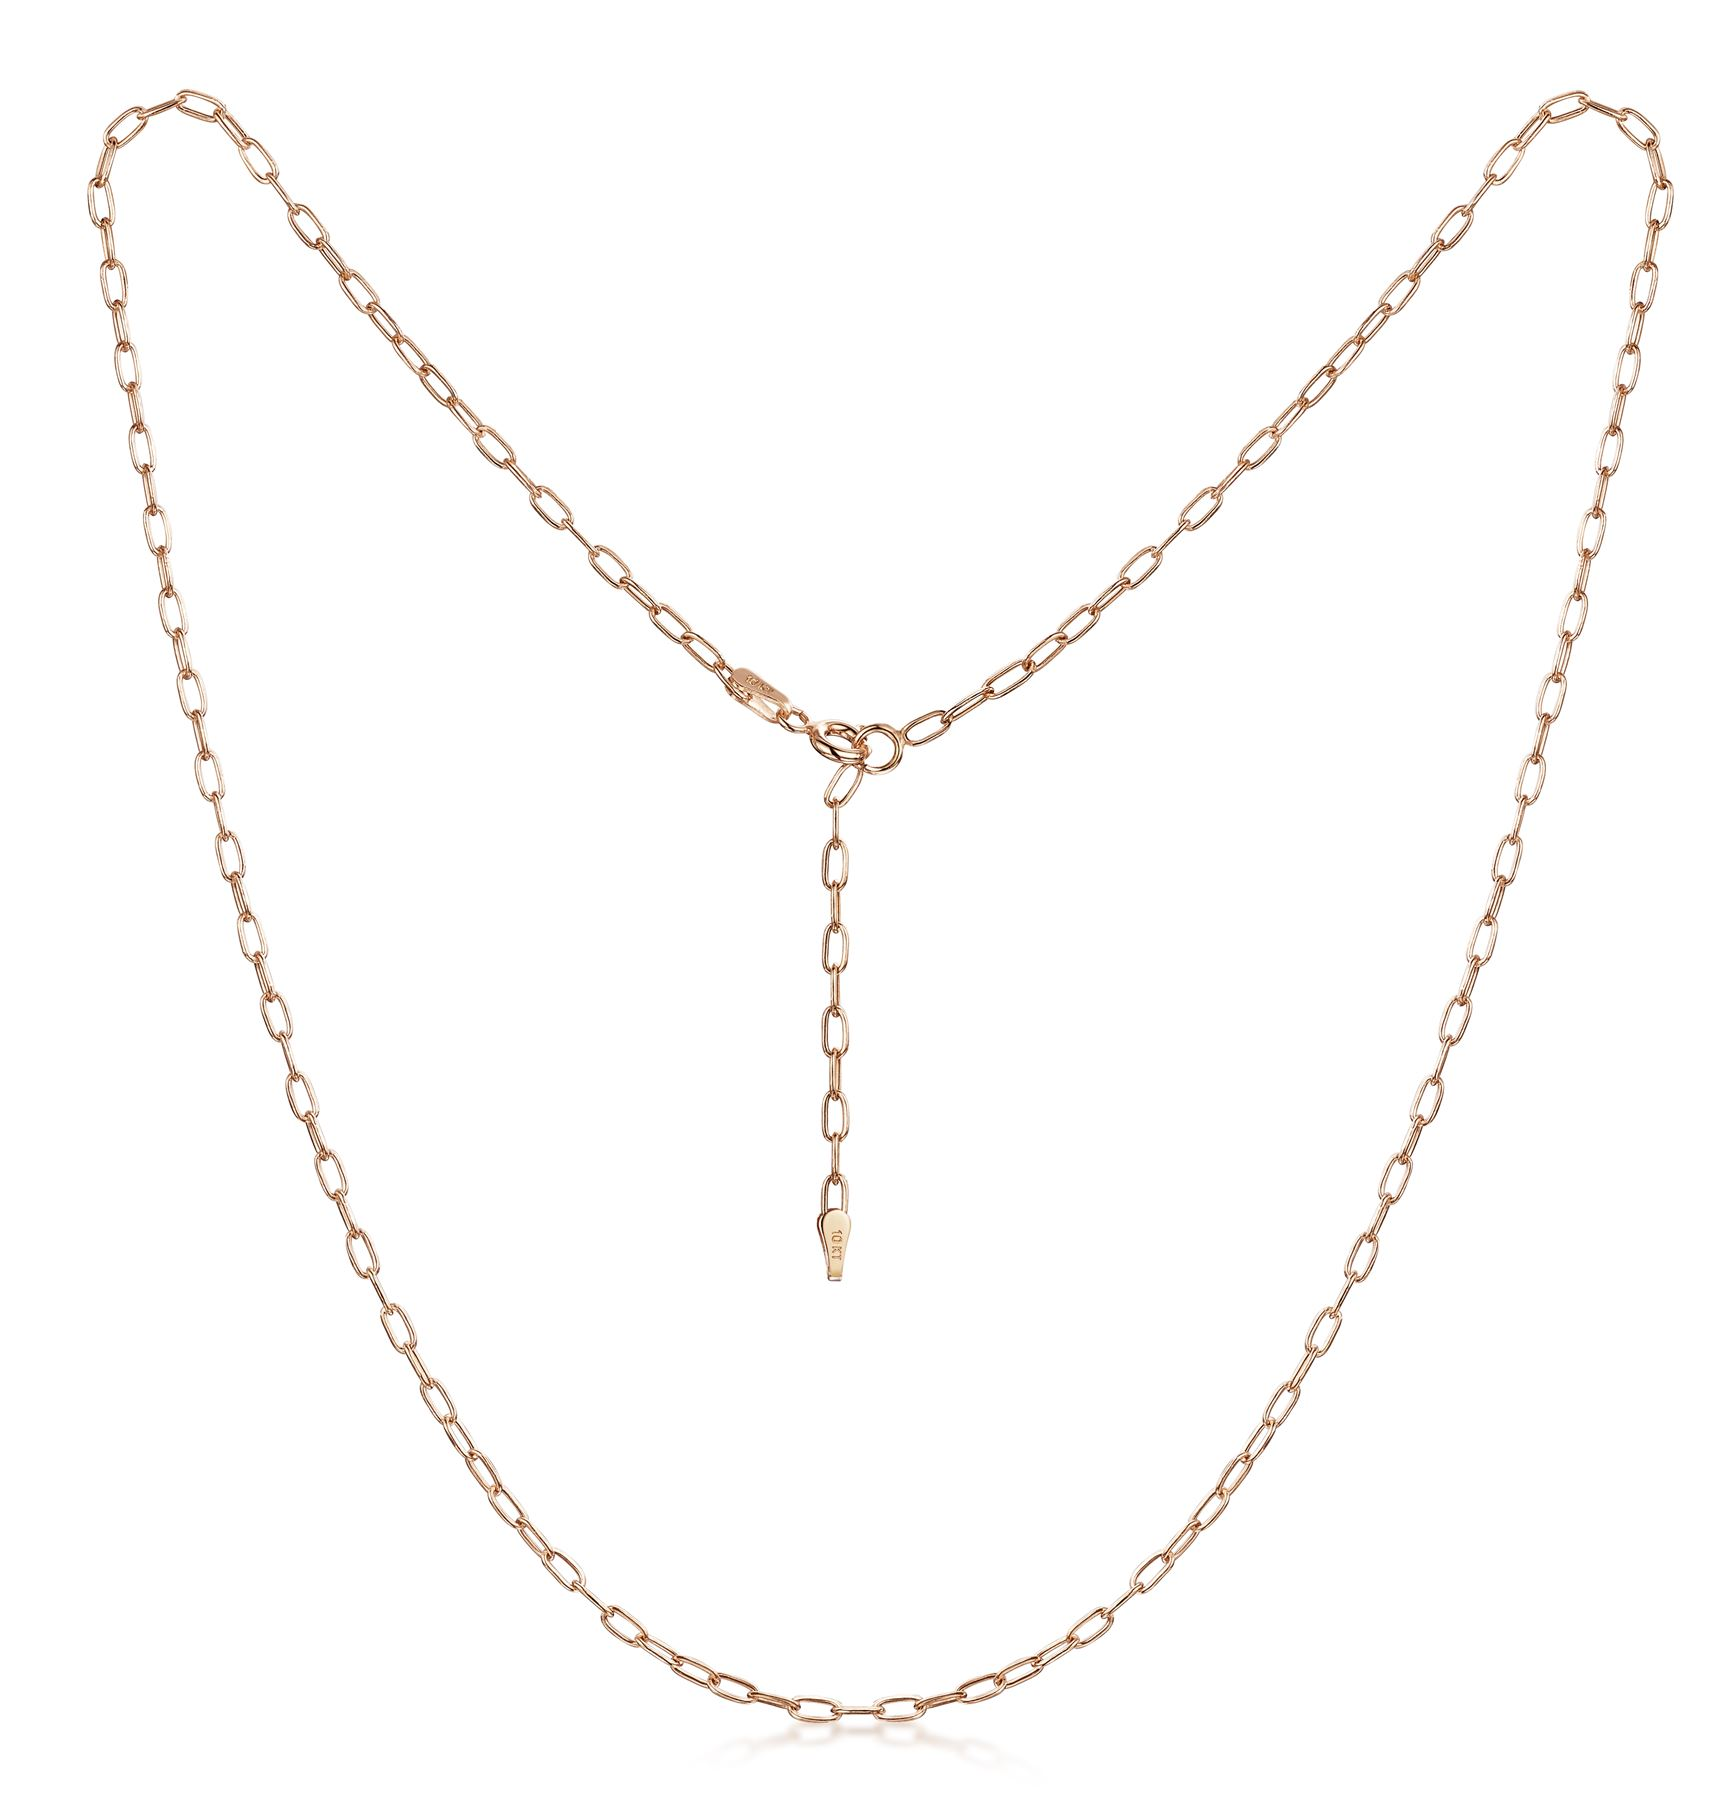 Amberta-Genuine-Solid-10k-Gold-Chain-Adjustable-Necklace-for-Women-and-Men thumbnail 10